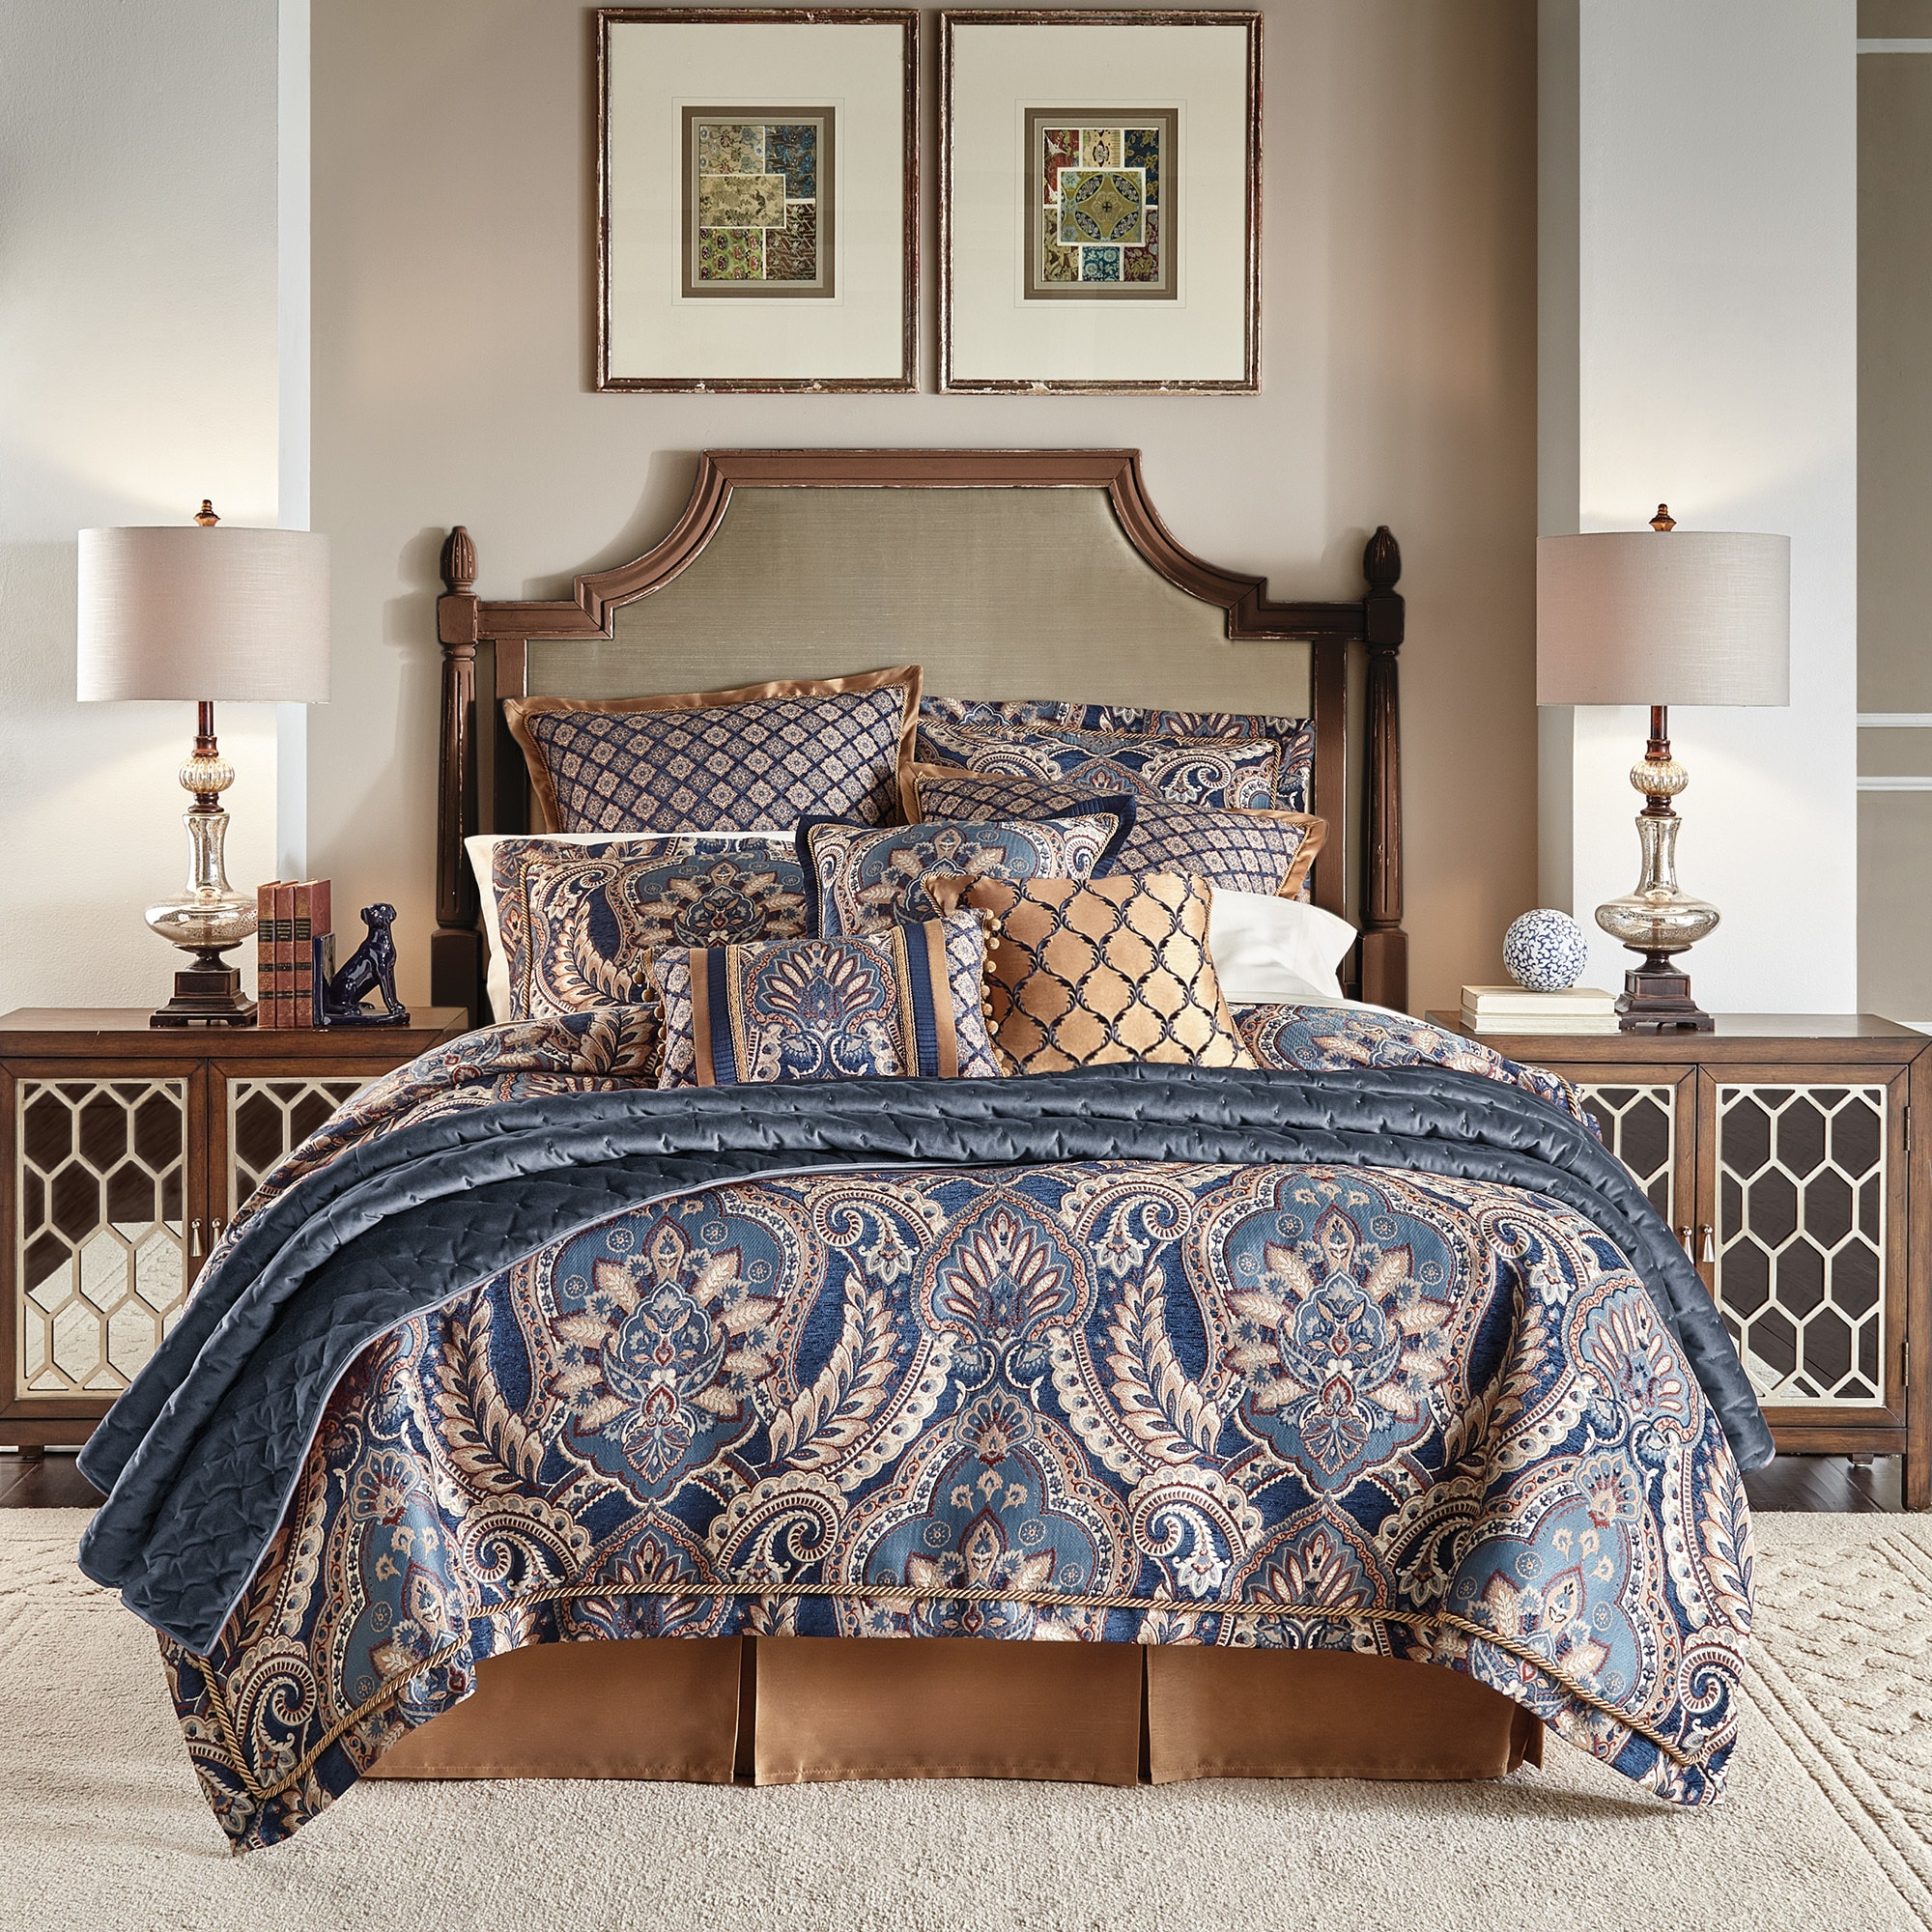 sets comforter free set shipping croscill overstock coastal yachtsman bedding home product print bath today piece